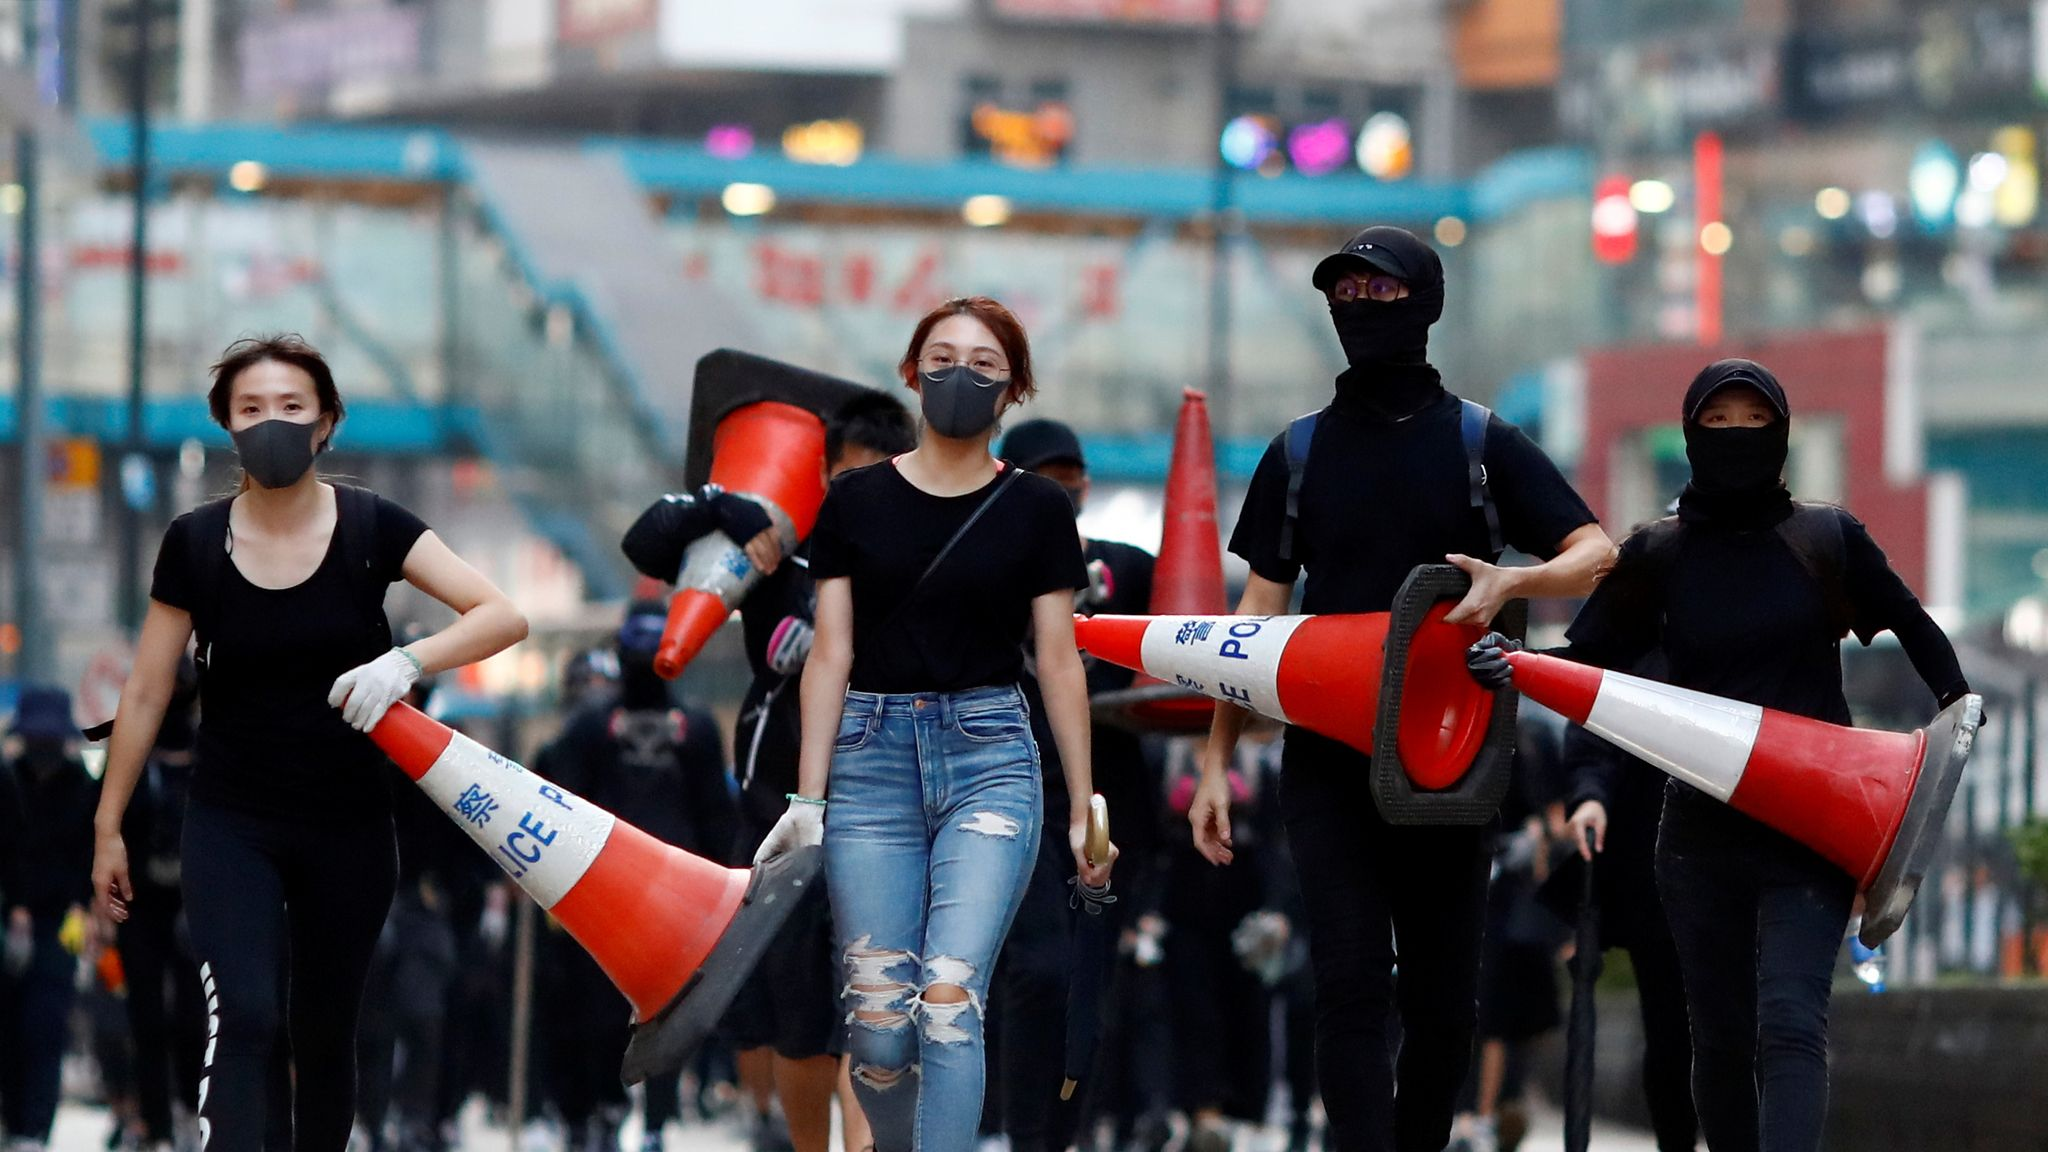 Hong Kong: 'Demonstrators are the people's enemy,' says Carrie Lam